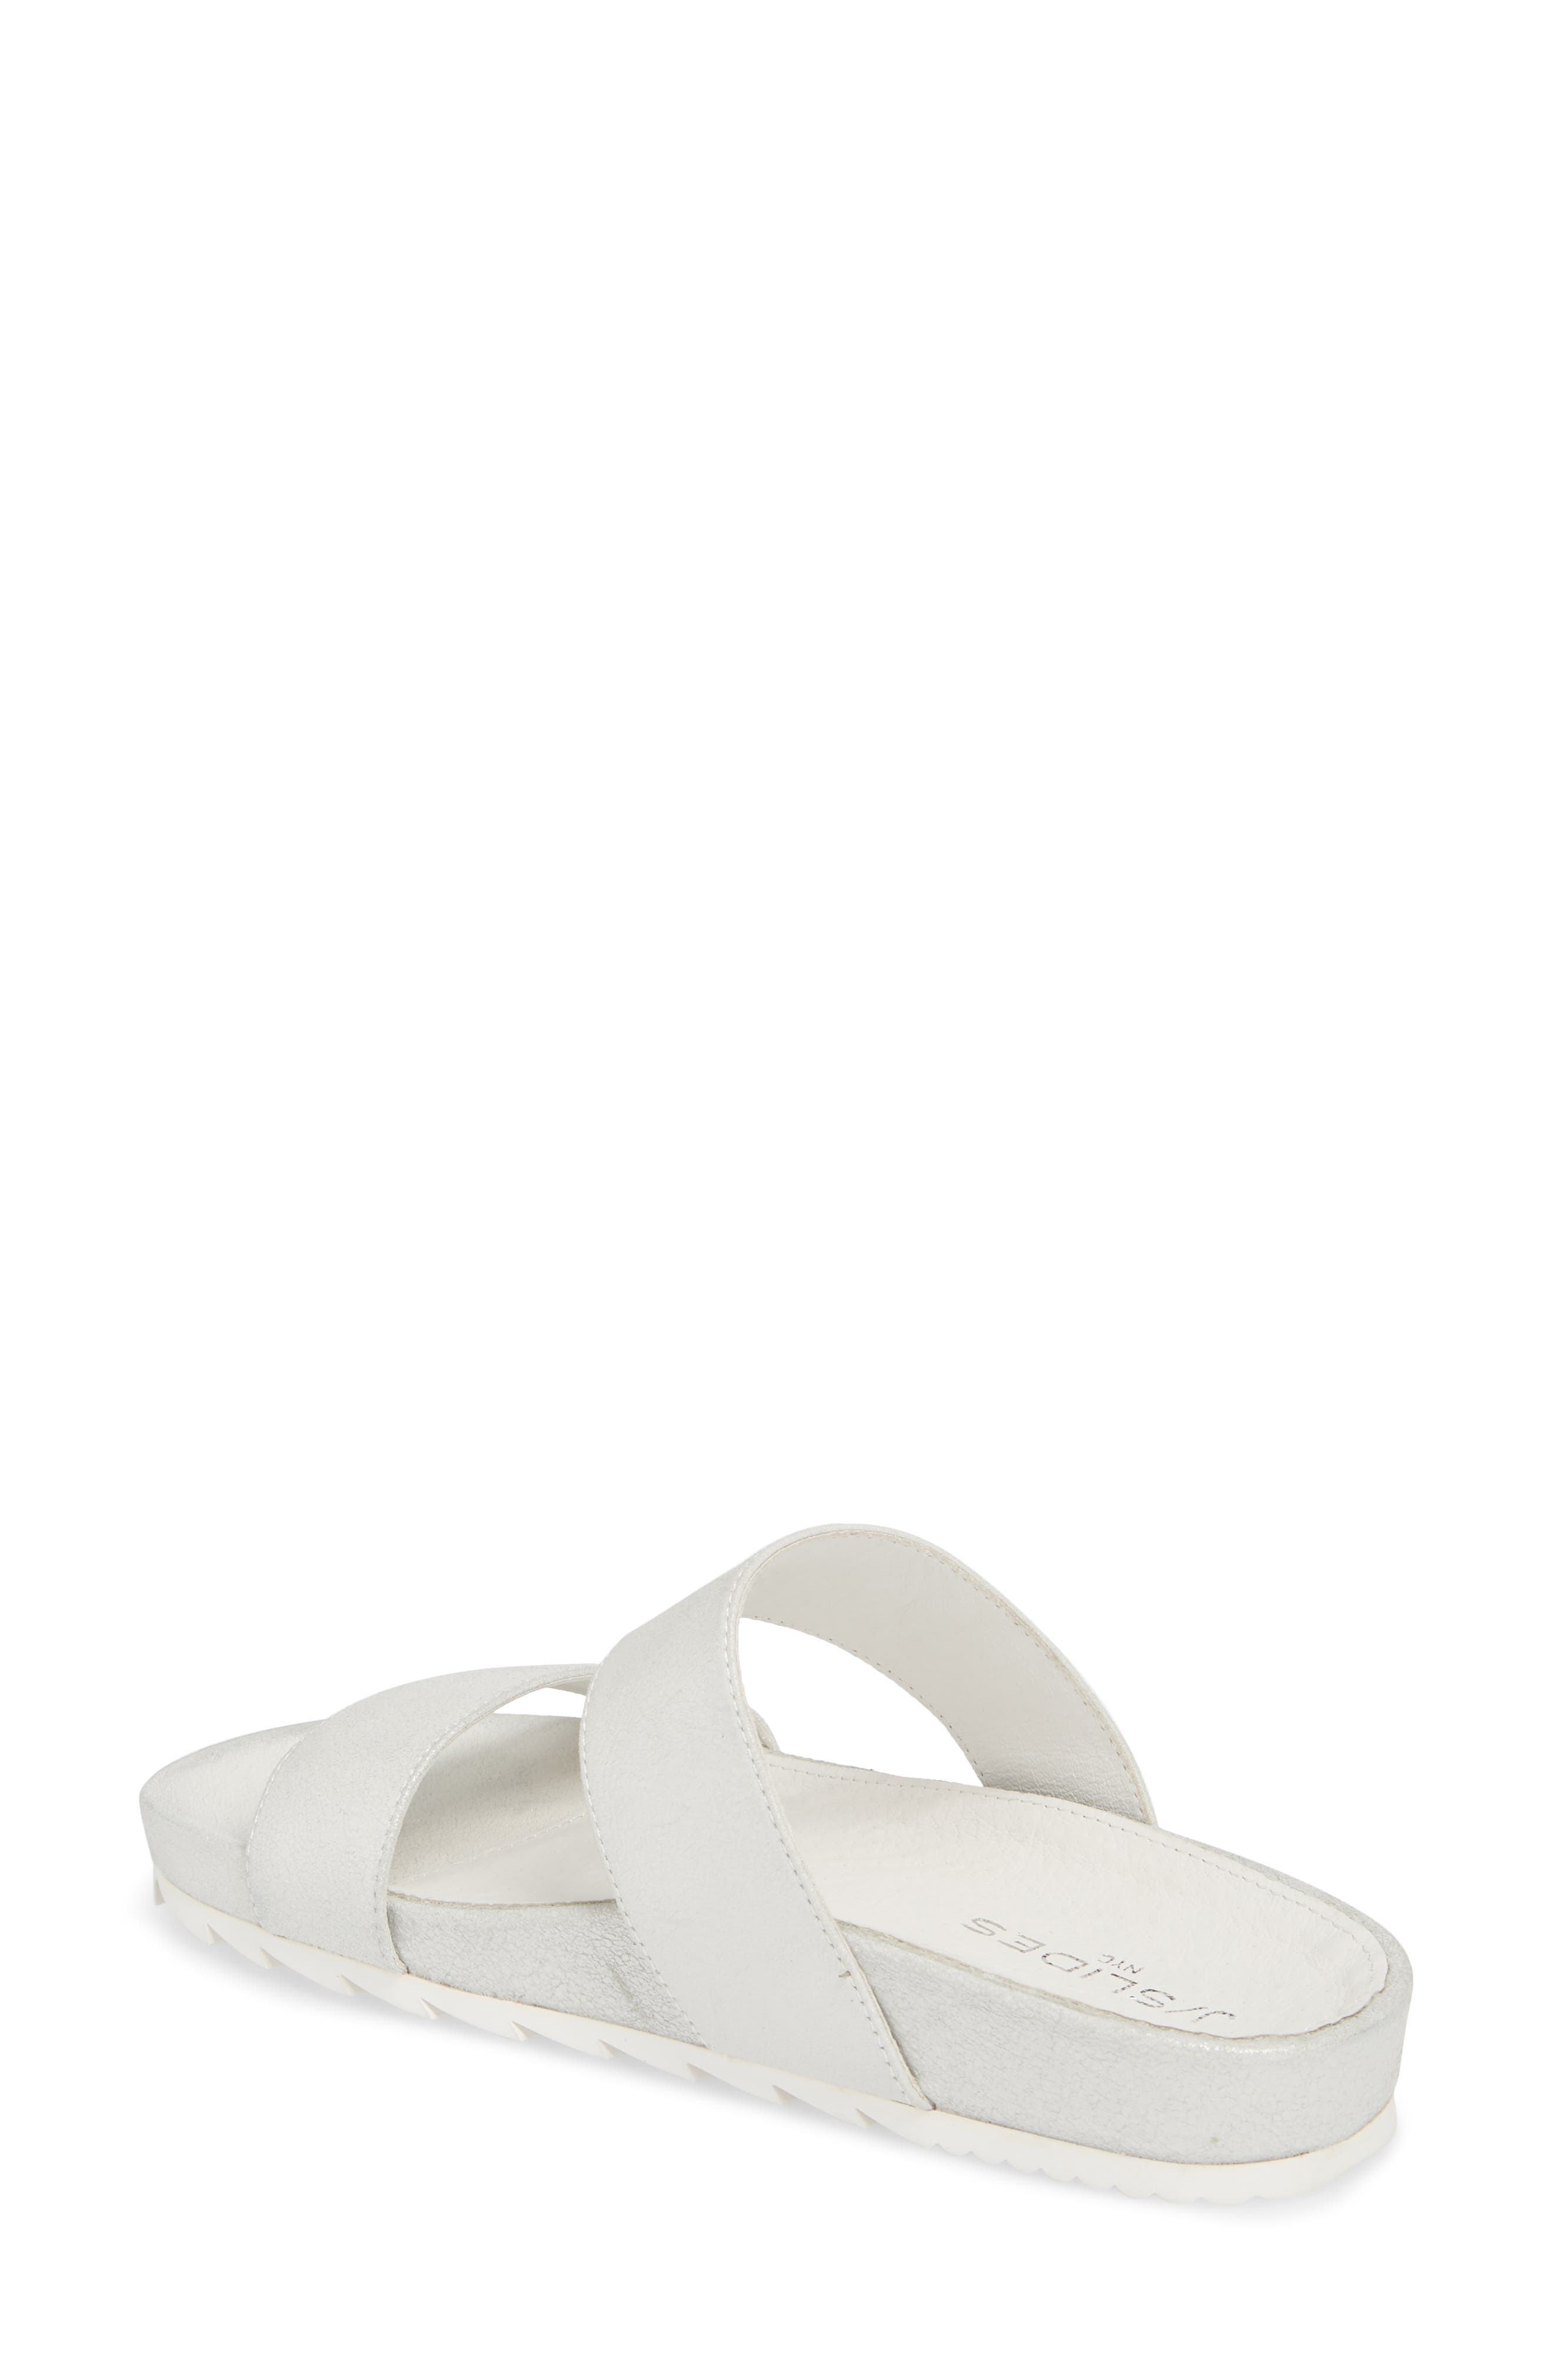 Edie Sandal,                             Alternate thumbnail 2, color,                             Silver Fabric